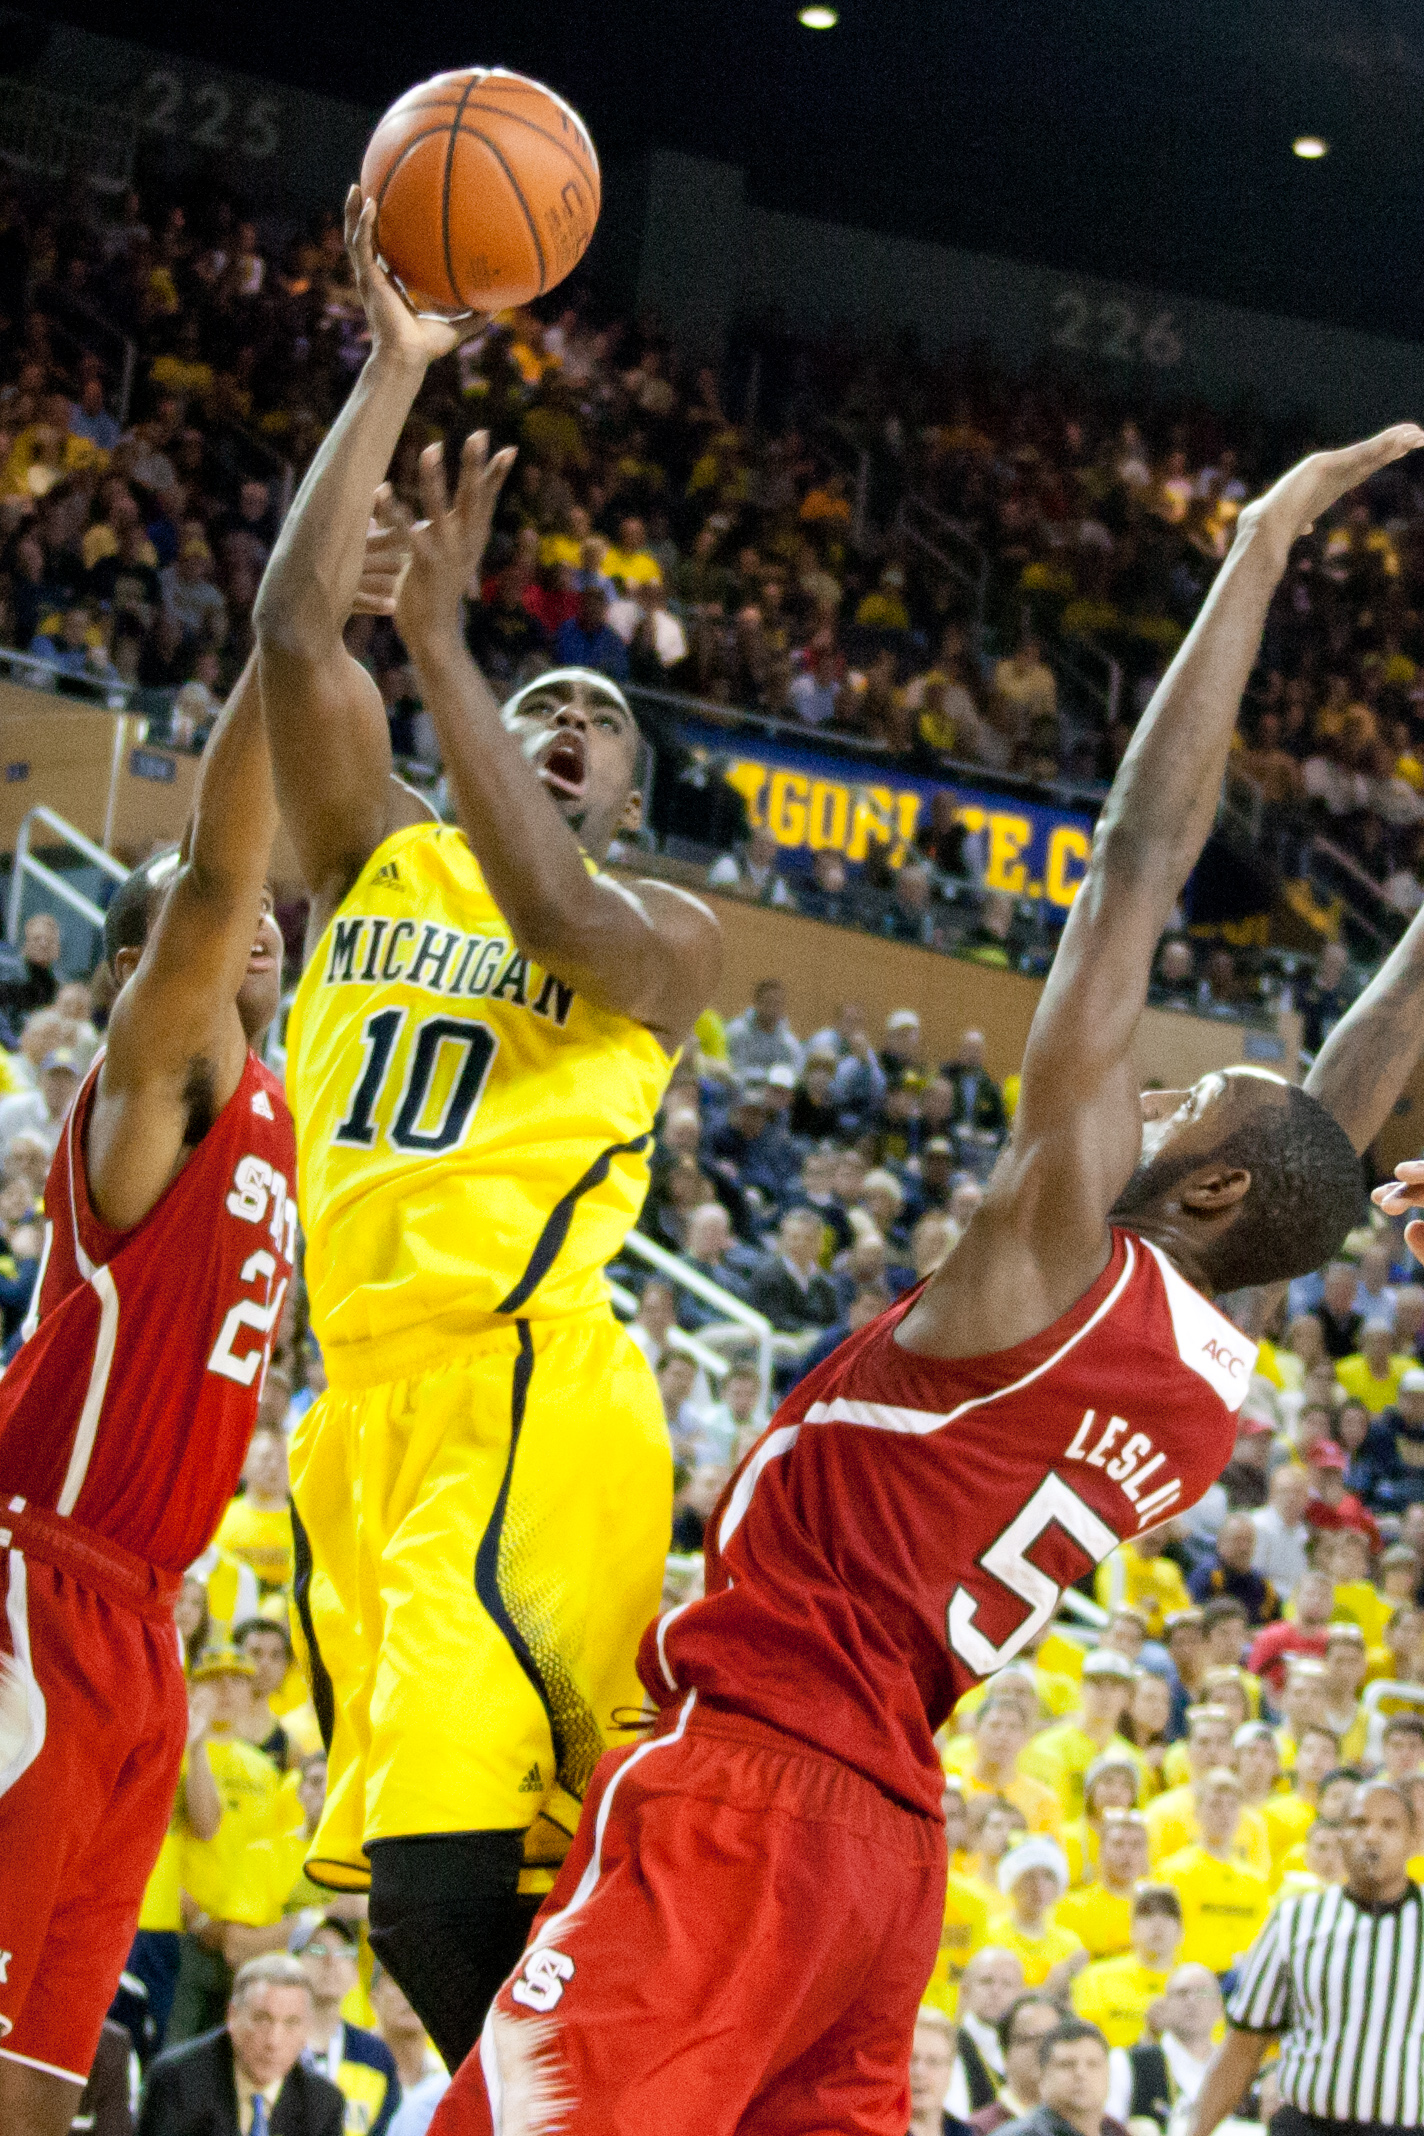 Michigan 79, NC State 72 – #27